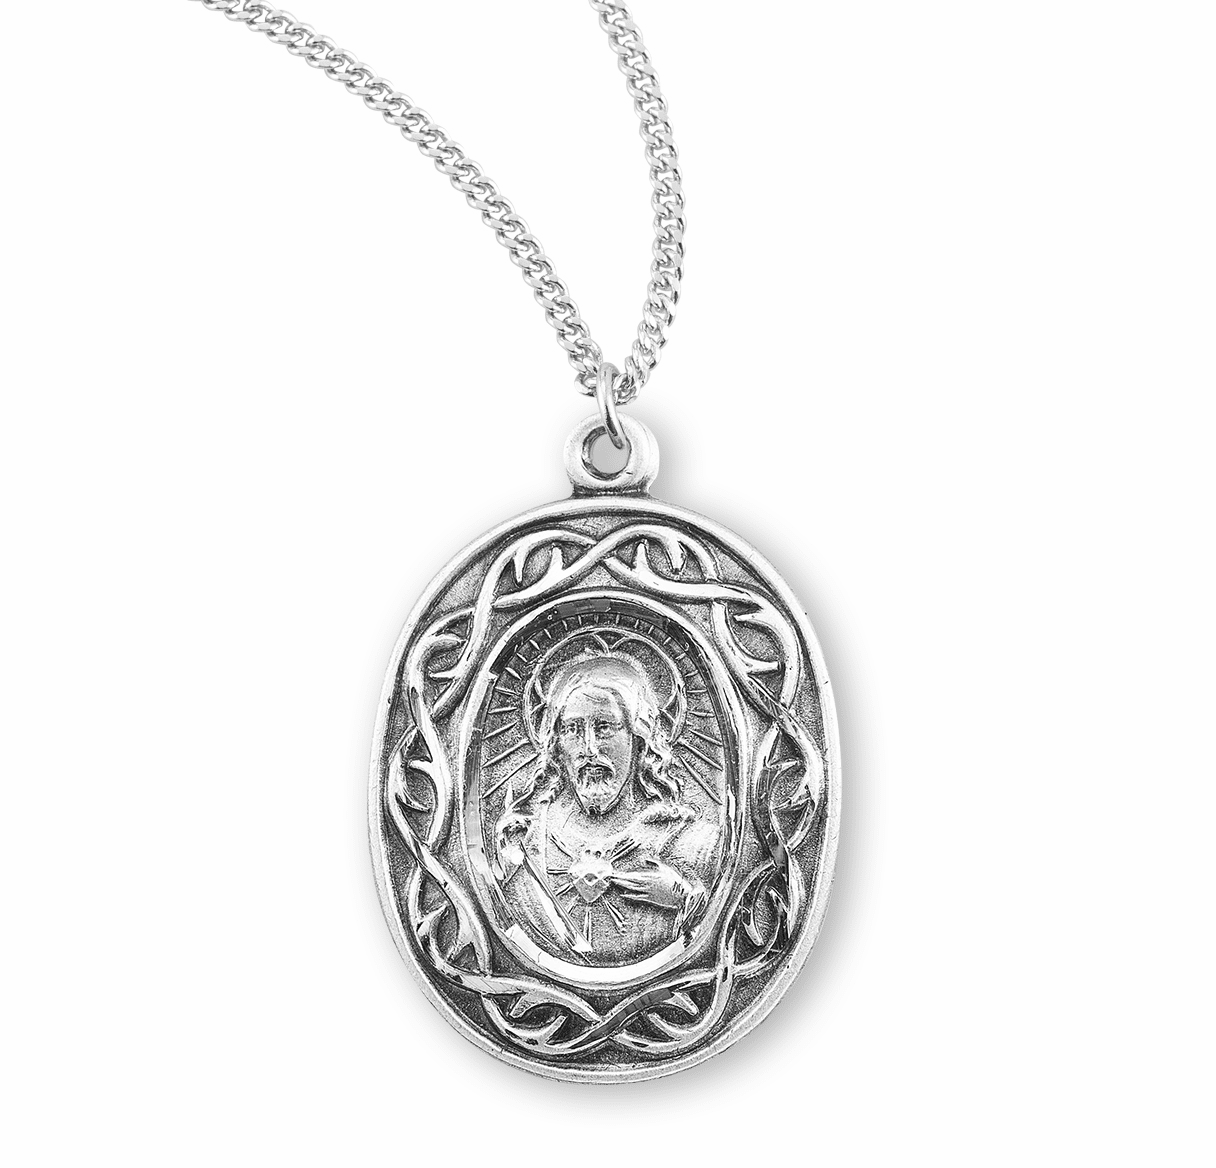 Scapular Crown of Thorns Medal Necklace by HMH Religious